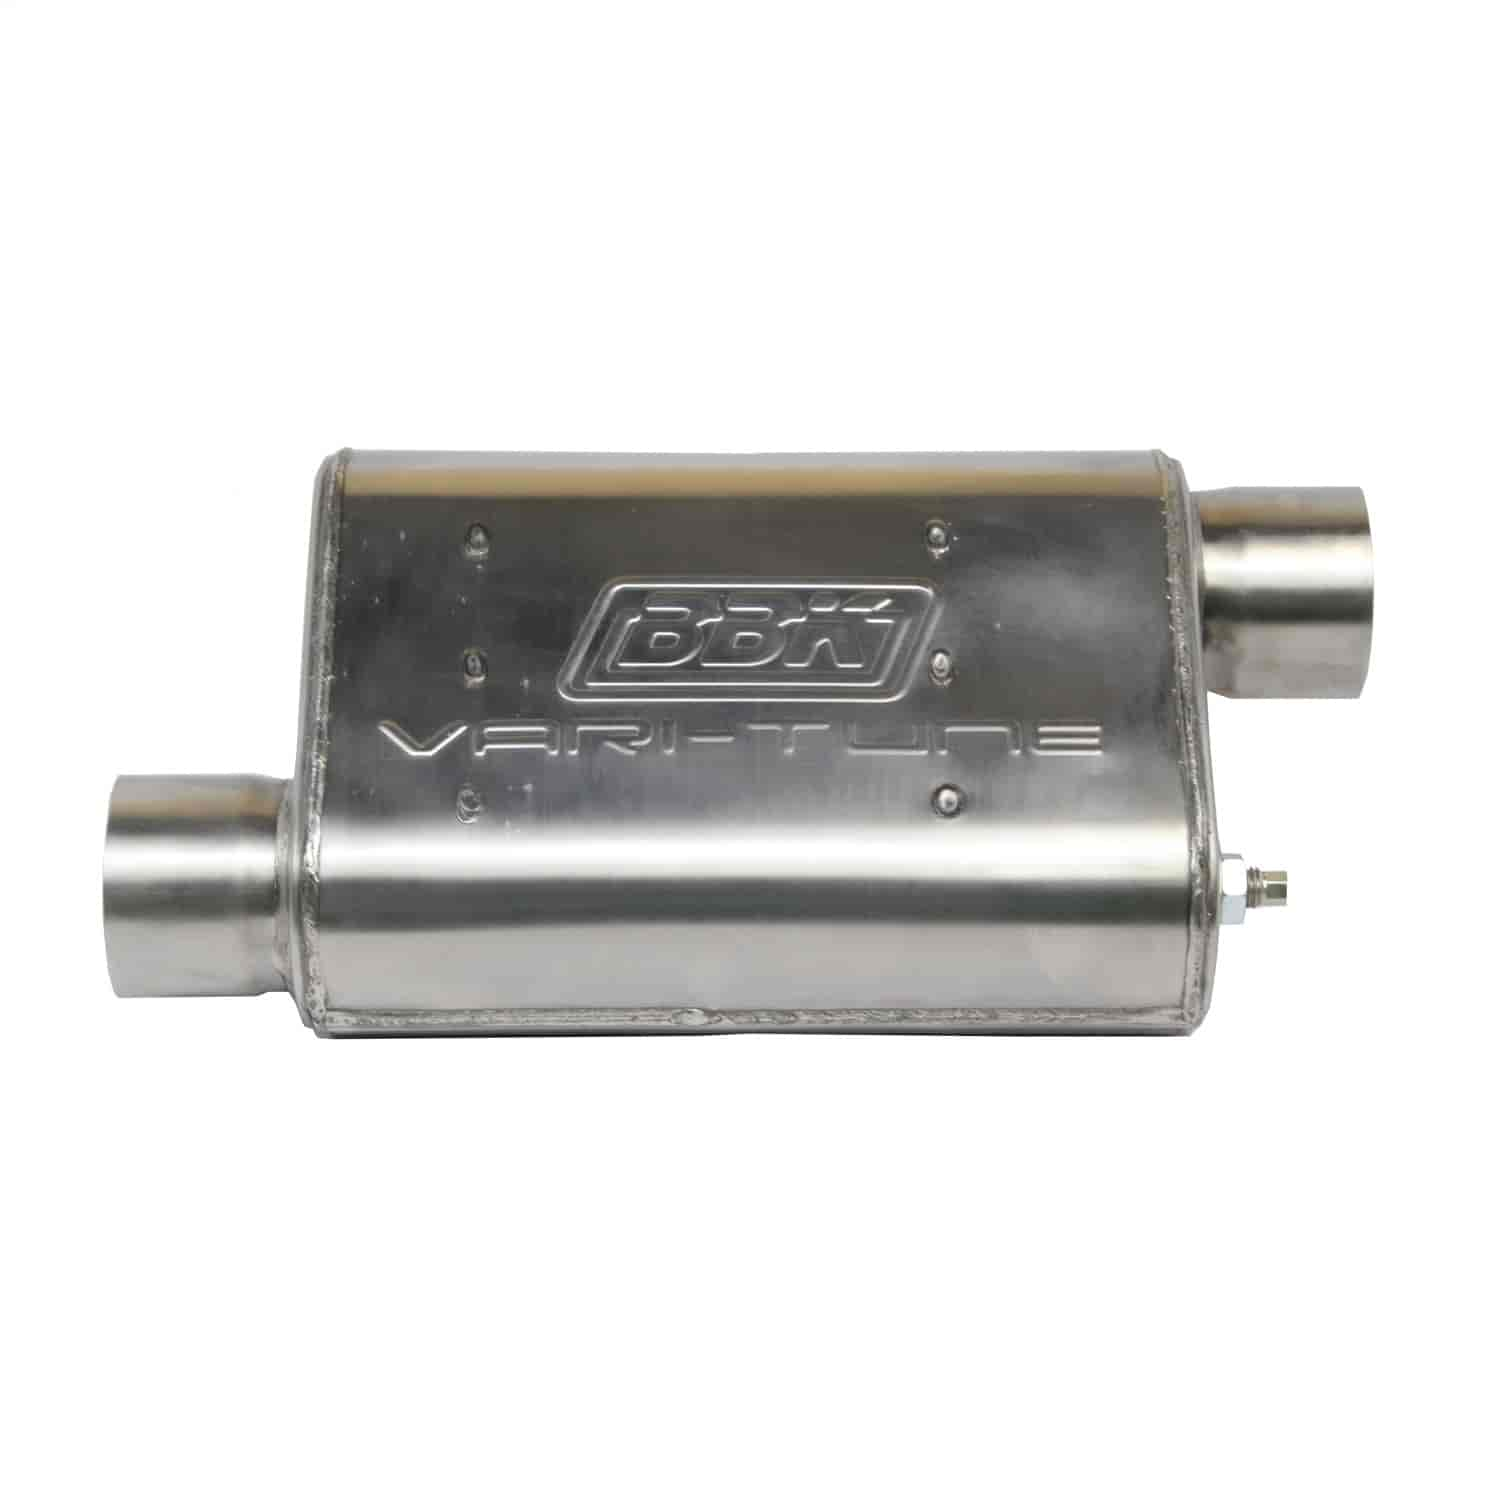 BBK Performance Parts 31025 - BBK Performance Parts Vari-Tune Performance Mufflers